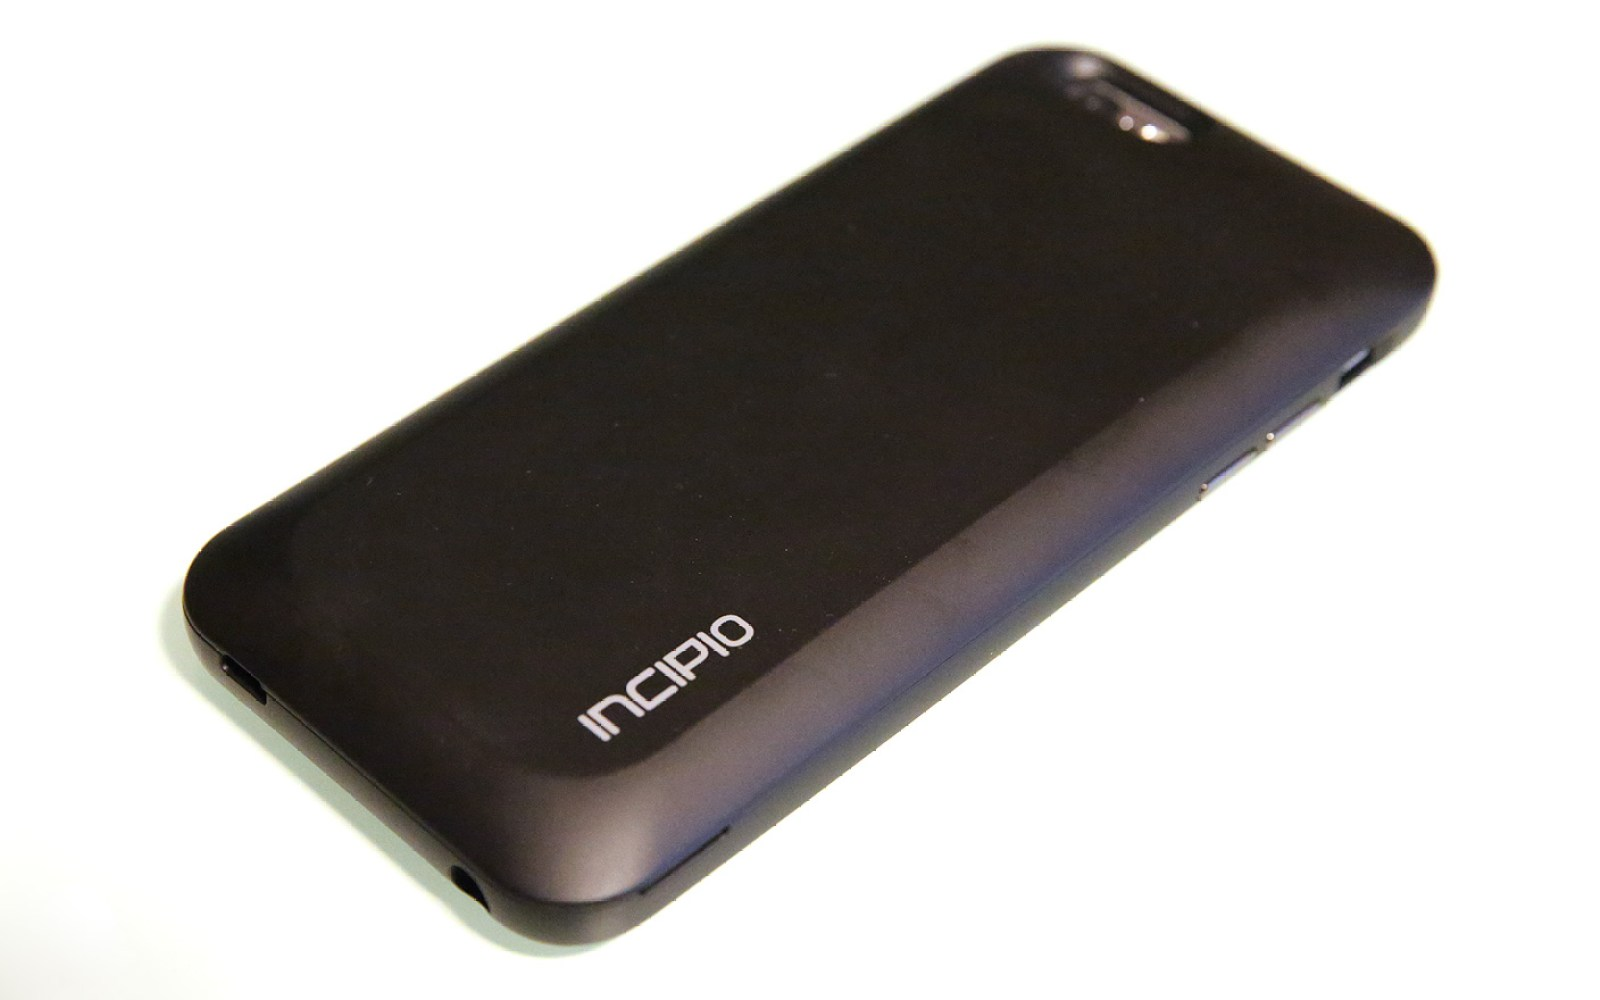 Review: Incipio's offGRID Express is the most affordable Apple-authorized iPhone 6 battery case